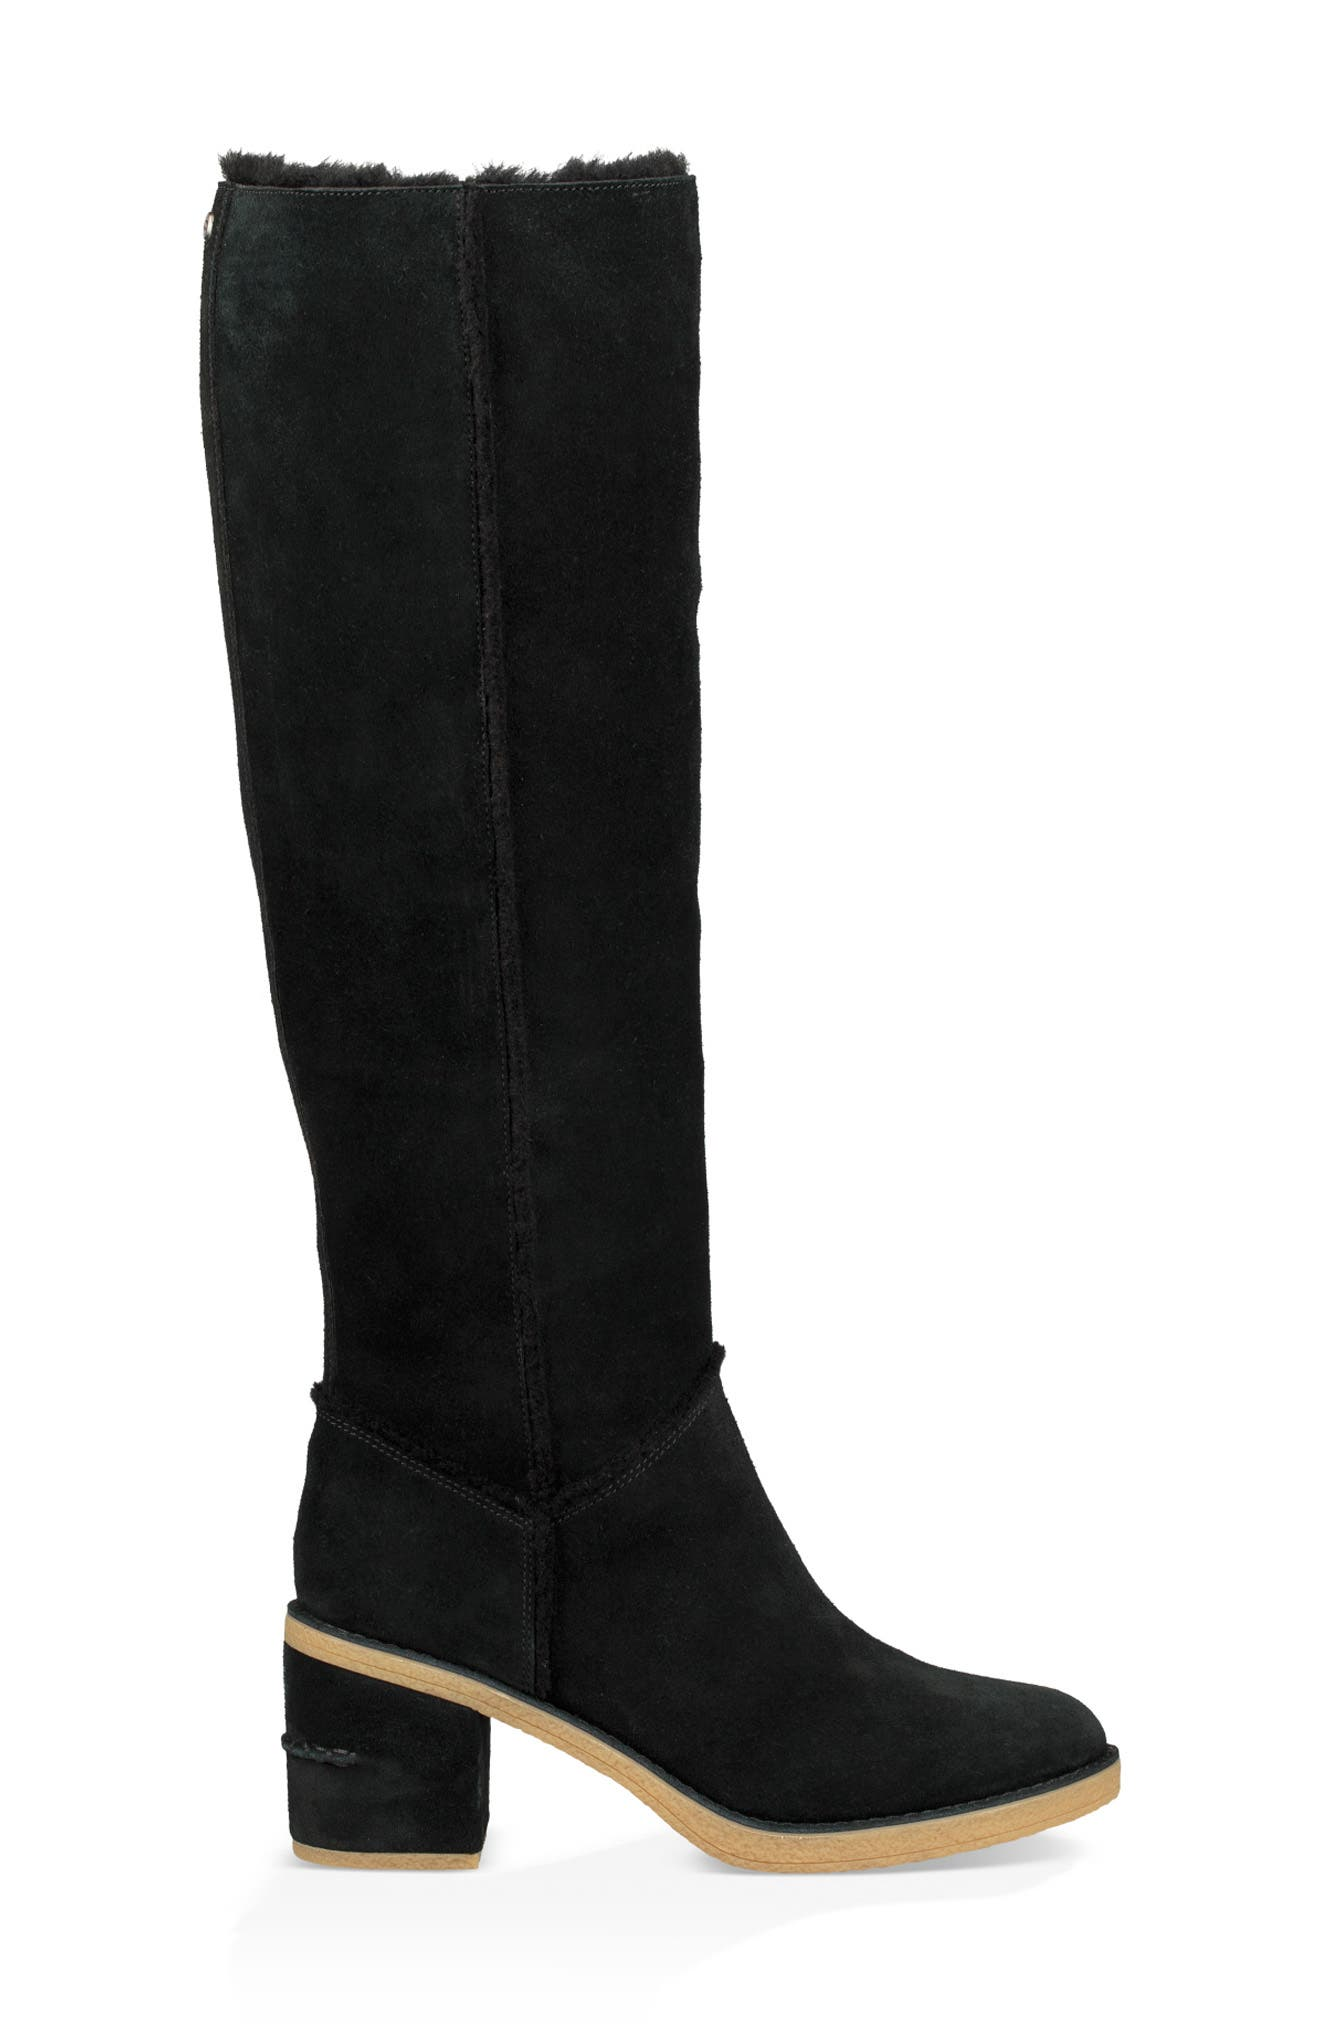 Kasen II Knee High Boot,                             Alternate thumbnail 3, color,                             001